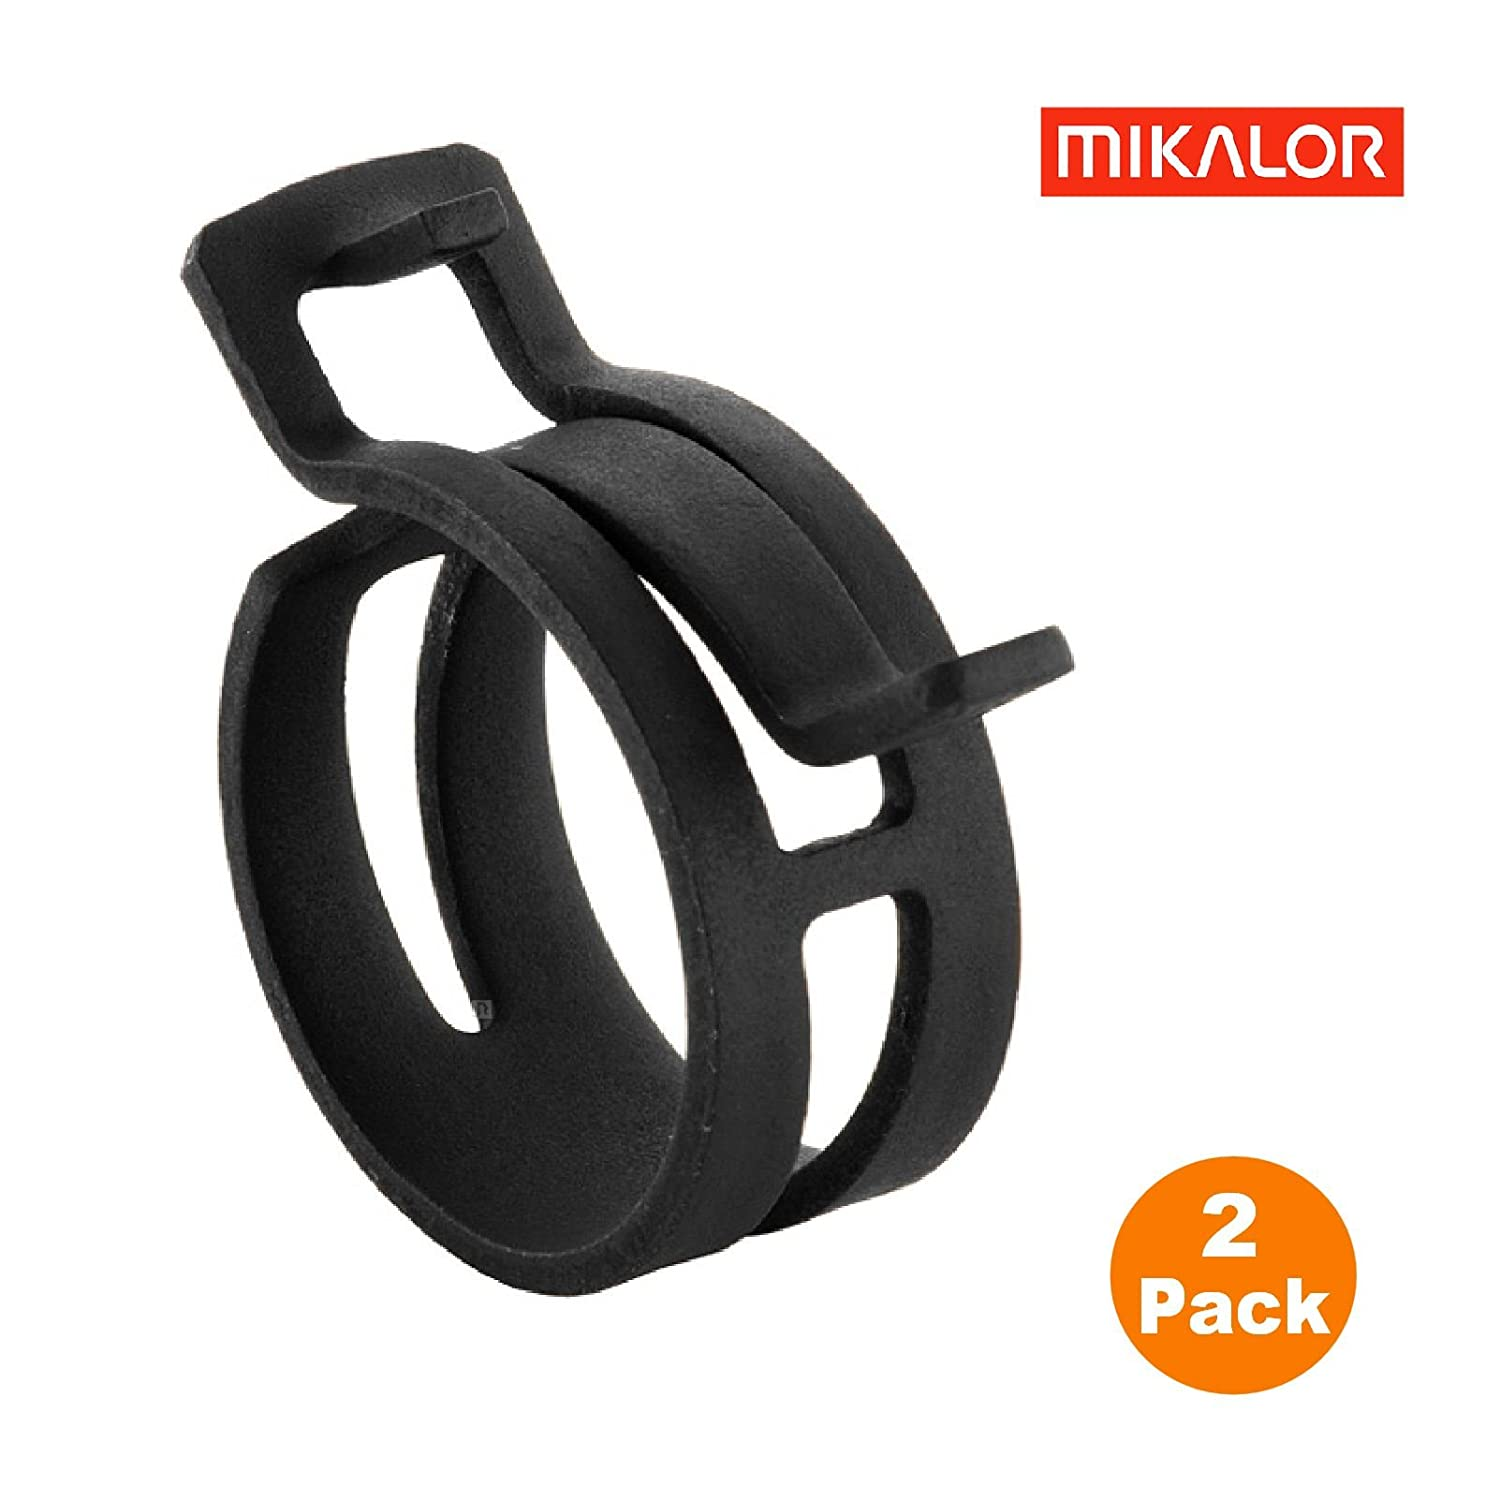 2 x 40mm Mikalor W1 Heavy Duty Spring Band Clip Radiator Pipe Air Oil Fuel DIN 3021